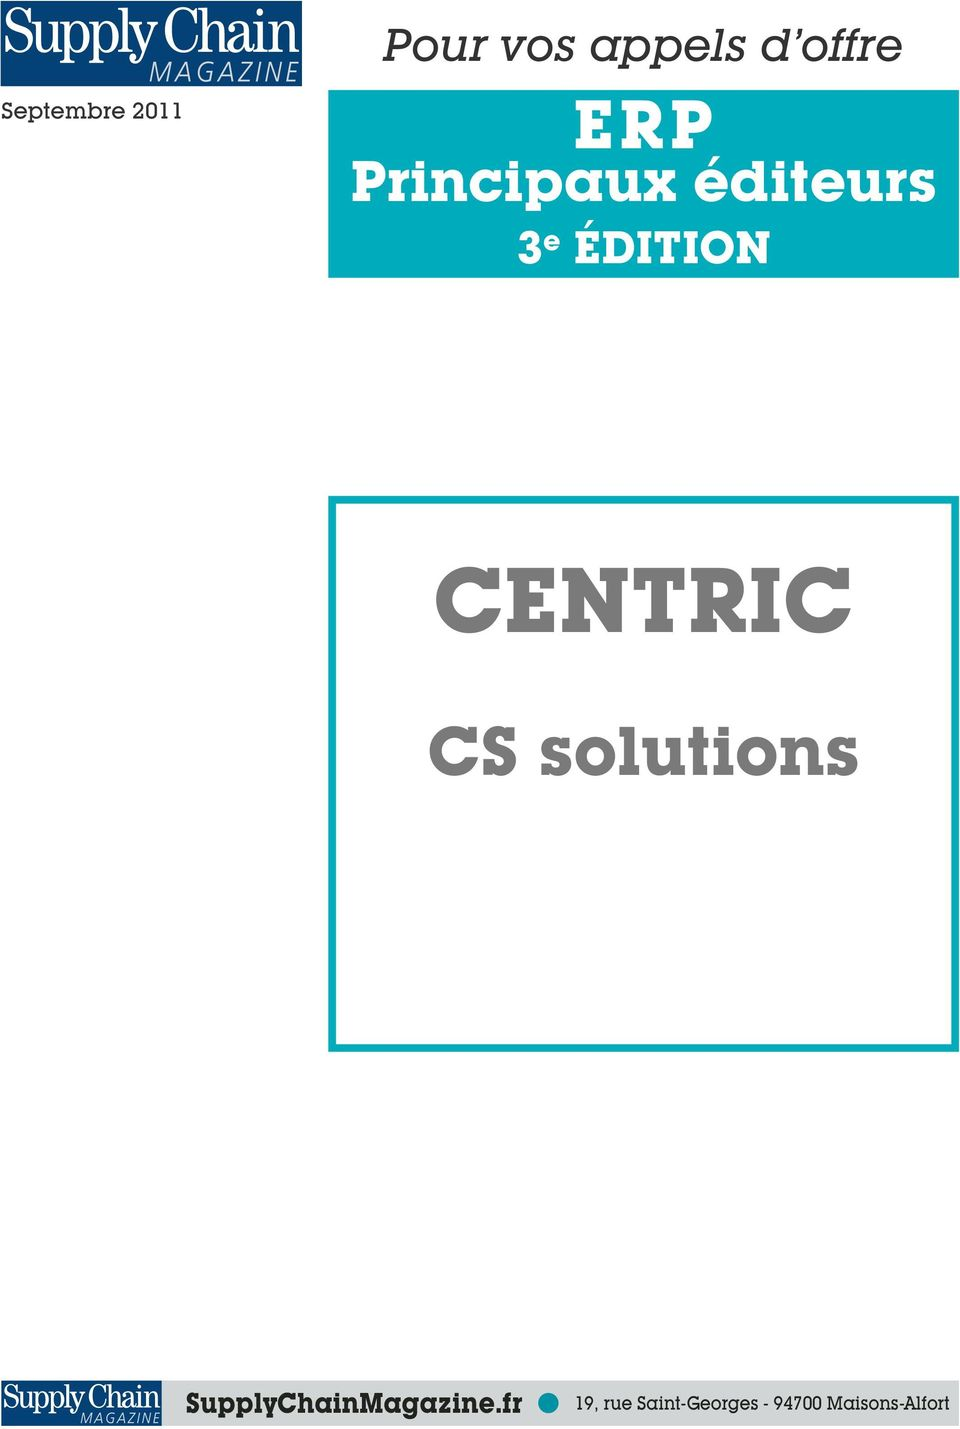 CENTRIC CS solutions SupplyChainMagazine.